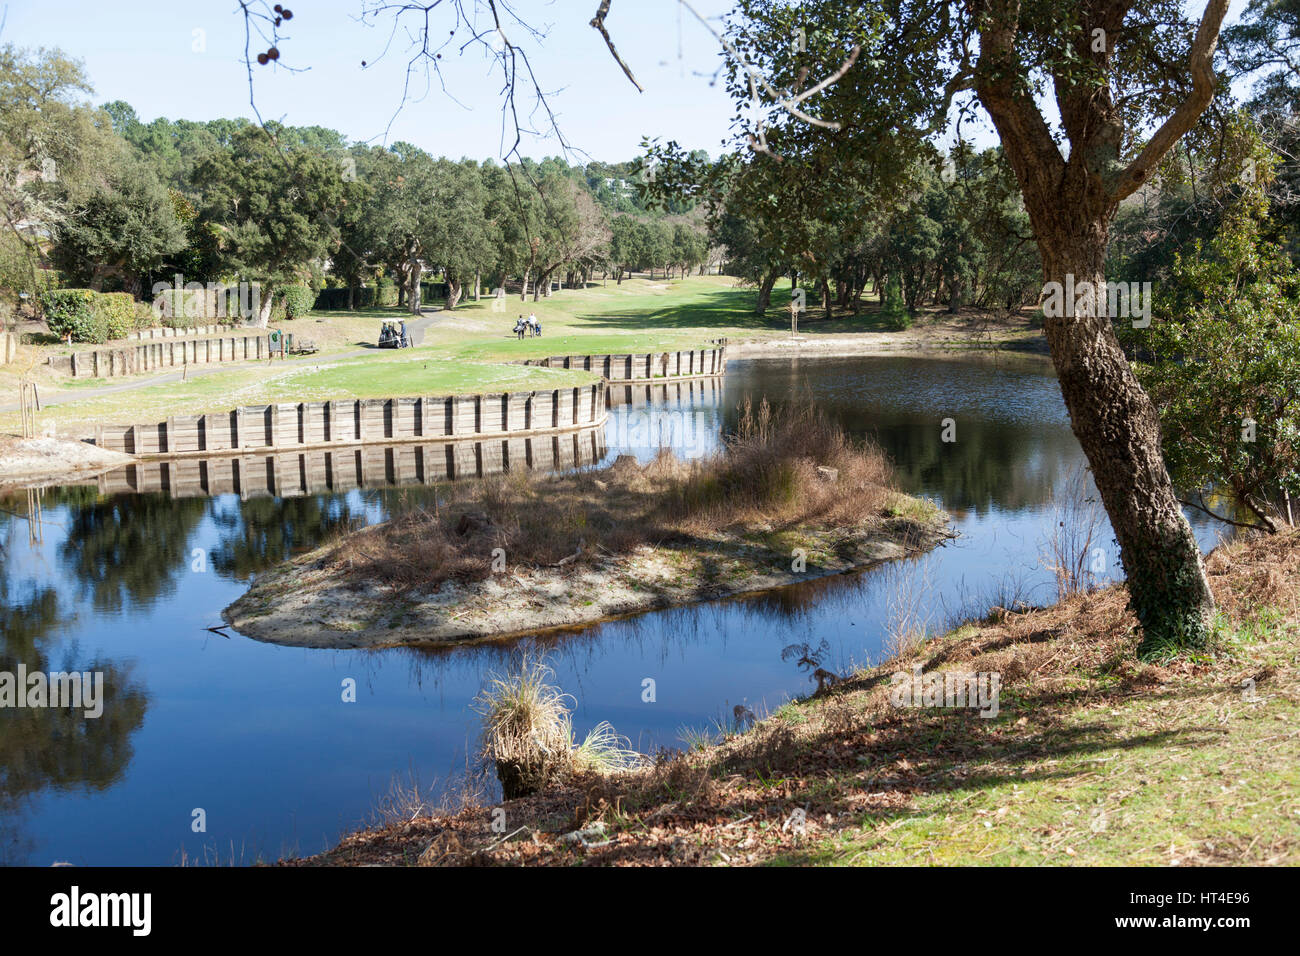 The 18 holes par 72 golf course of Seignosse (Landes - France). Hilly and constructed with lake and pond hazards, - Stock Image